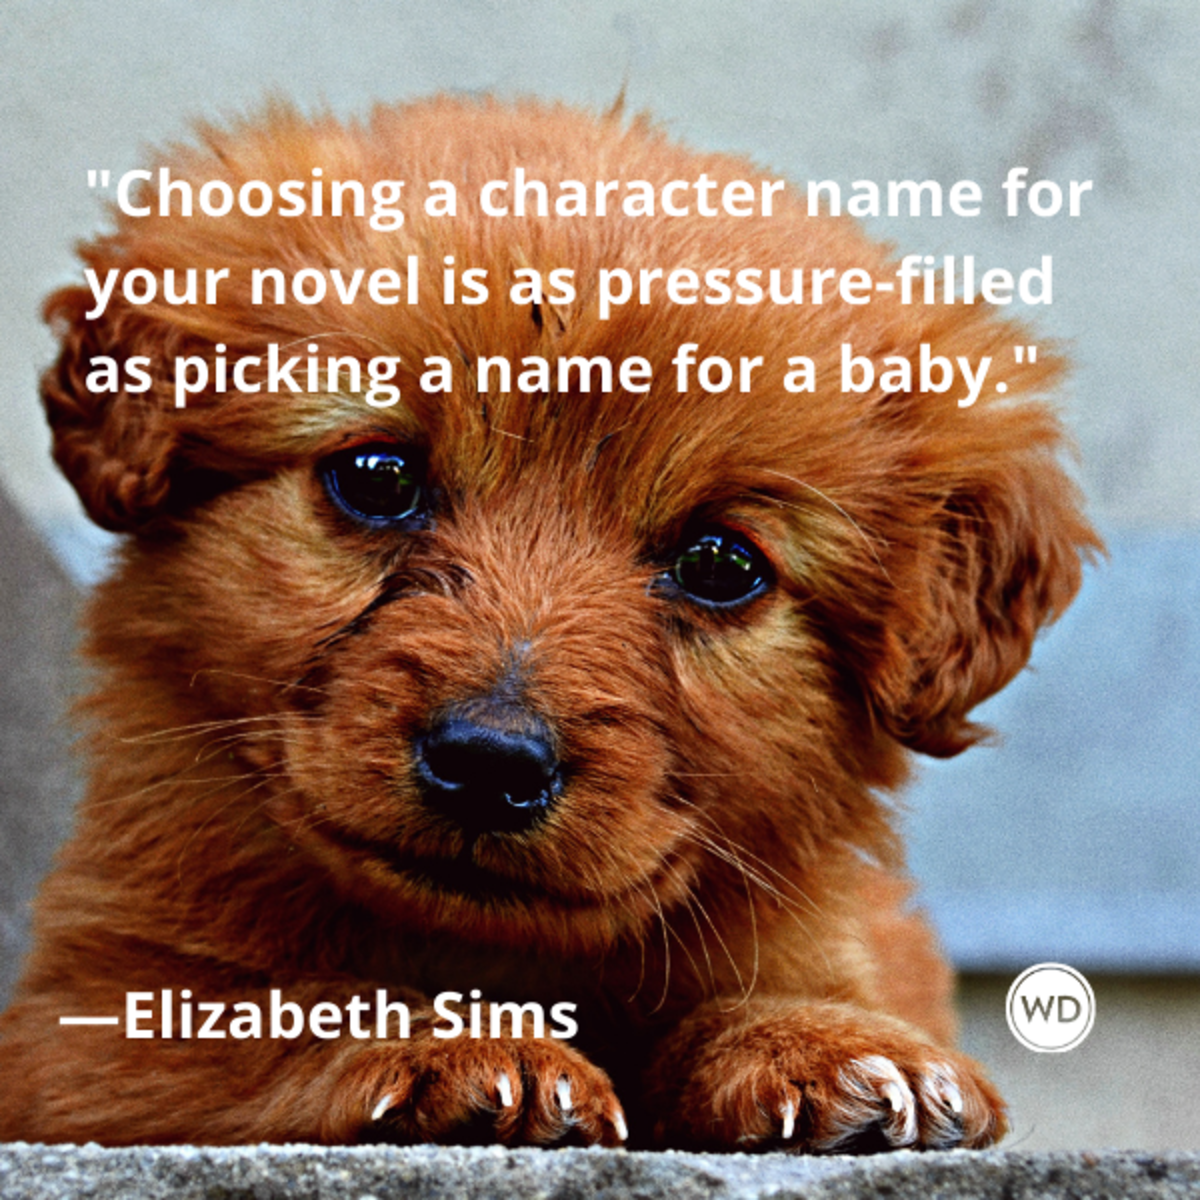 elizabeth_sims_quotes_choosing_a_character_name_for_your_novel_is_as_pressure_filled_as_picking_a_name_for_a_baby_writing_advice_with_dogs